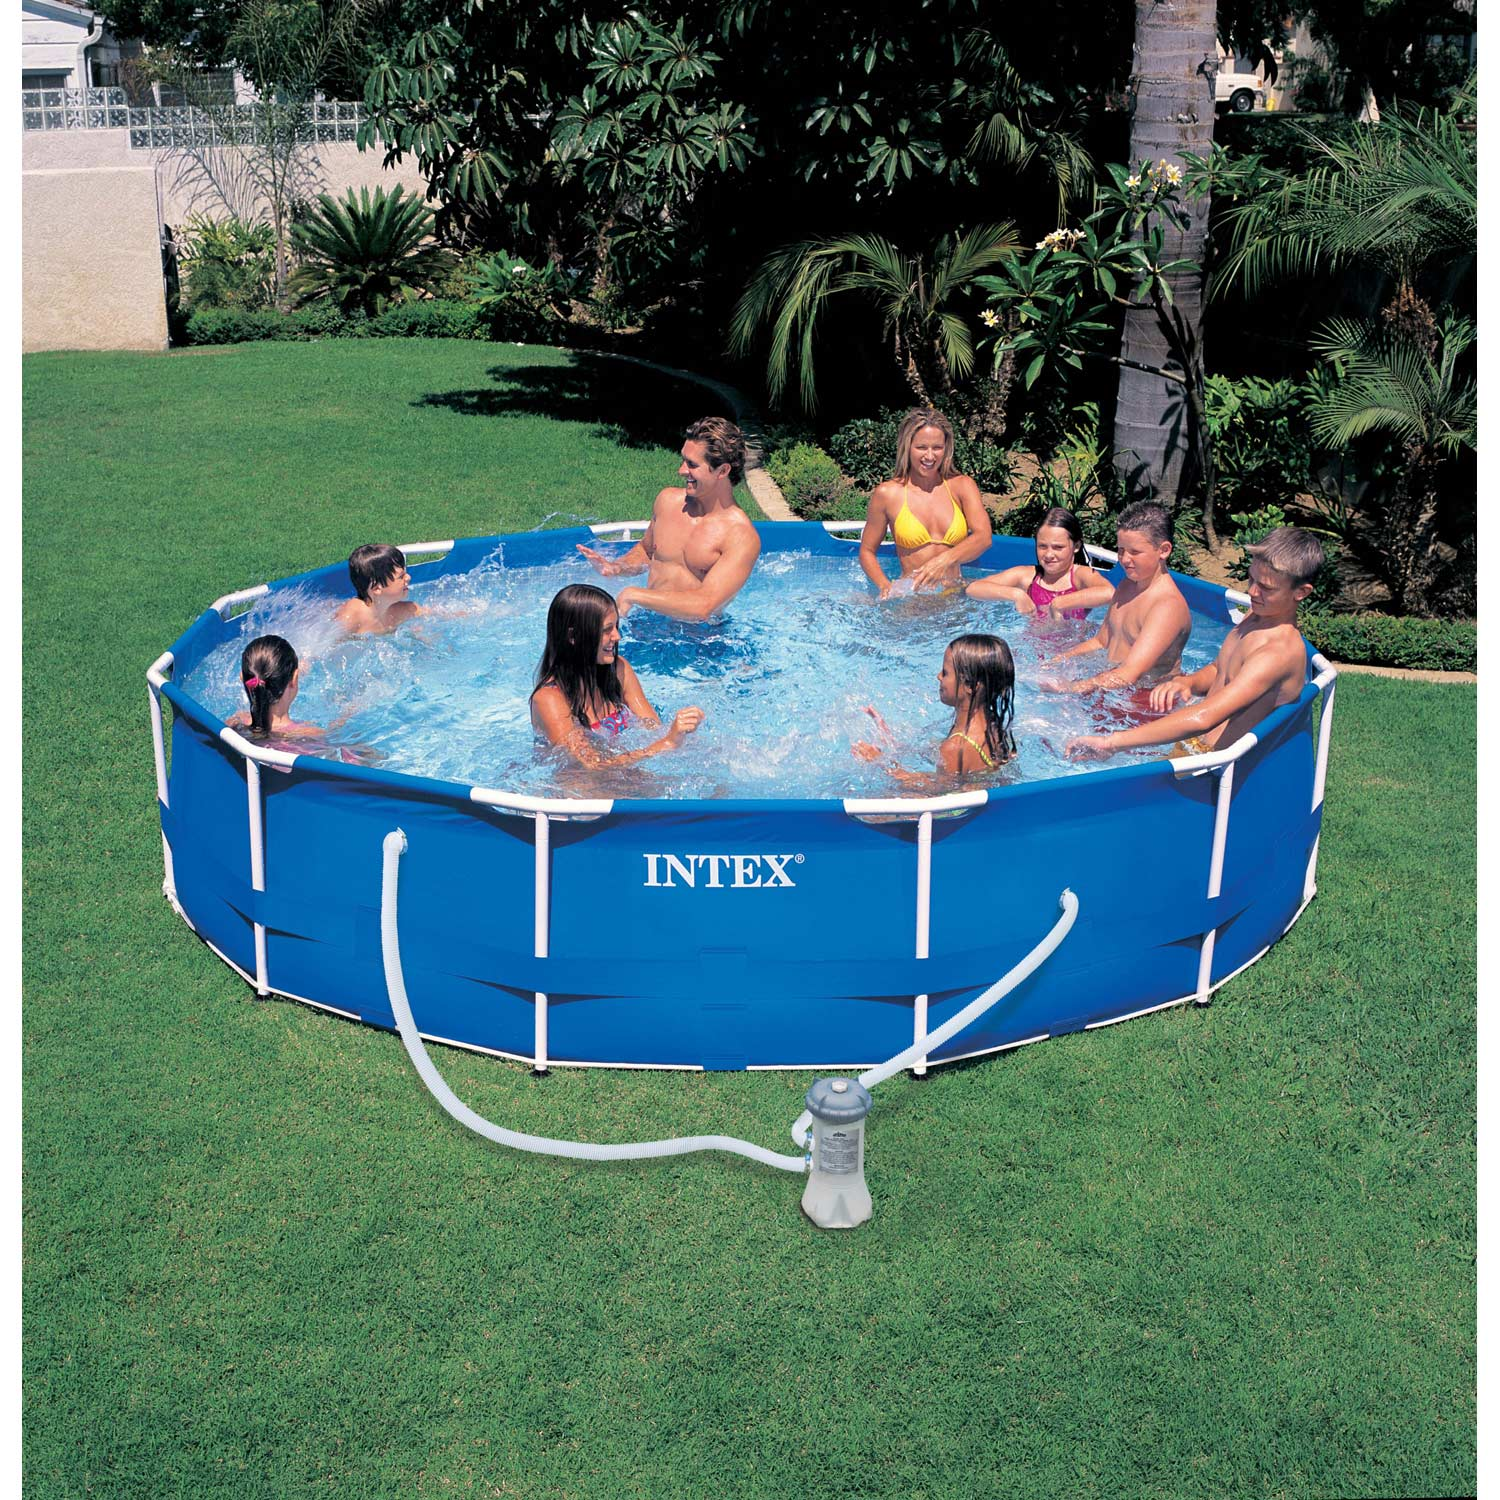 Piscine hors sol autoportante tubulaire metal frame intex for Piscine dans le sol